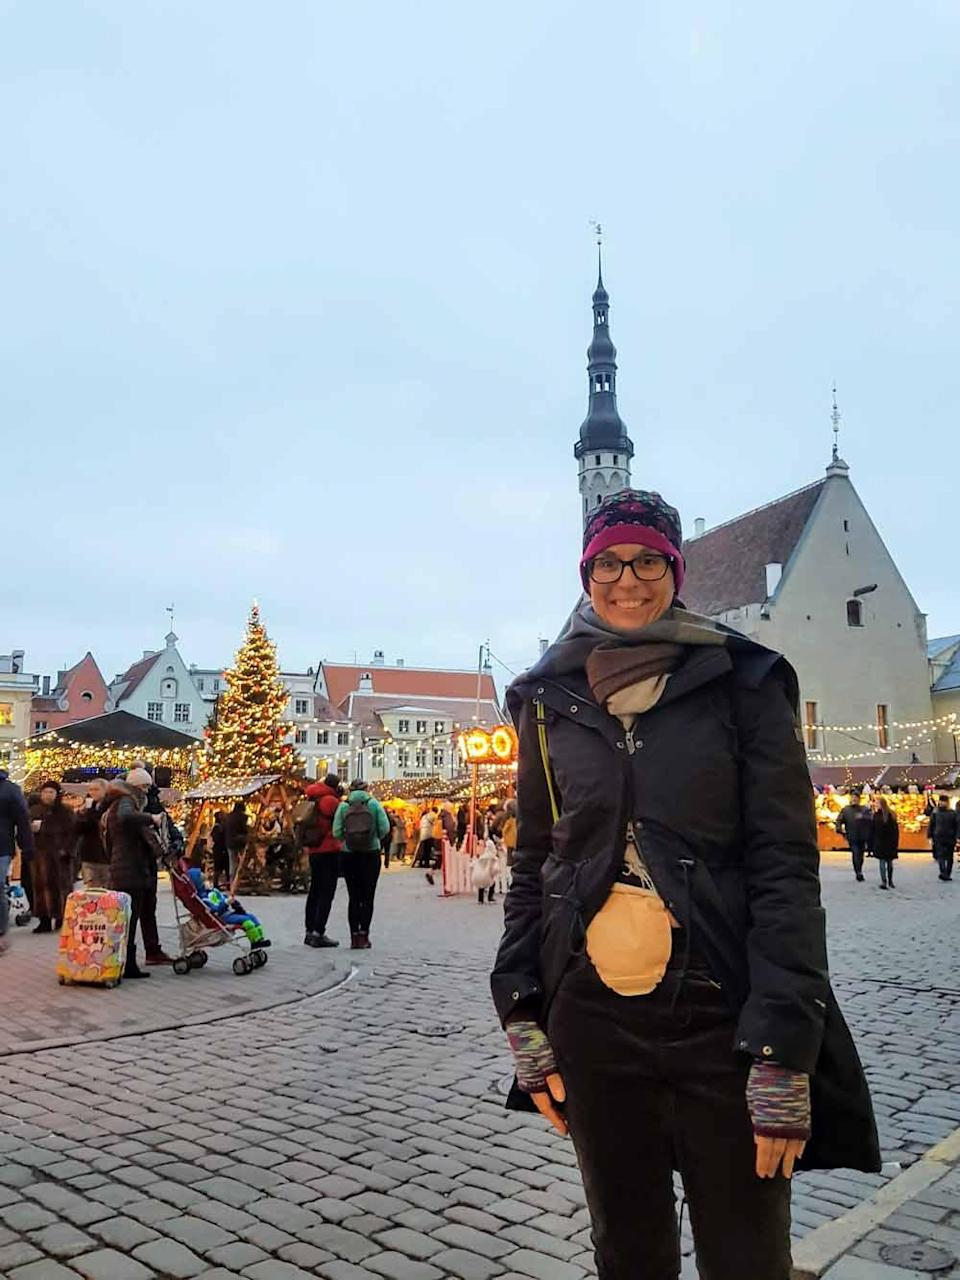 Laura in Tallinn. PA REAL LIFE COLLECT